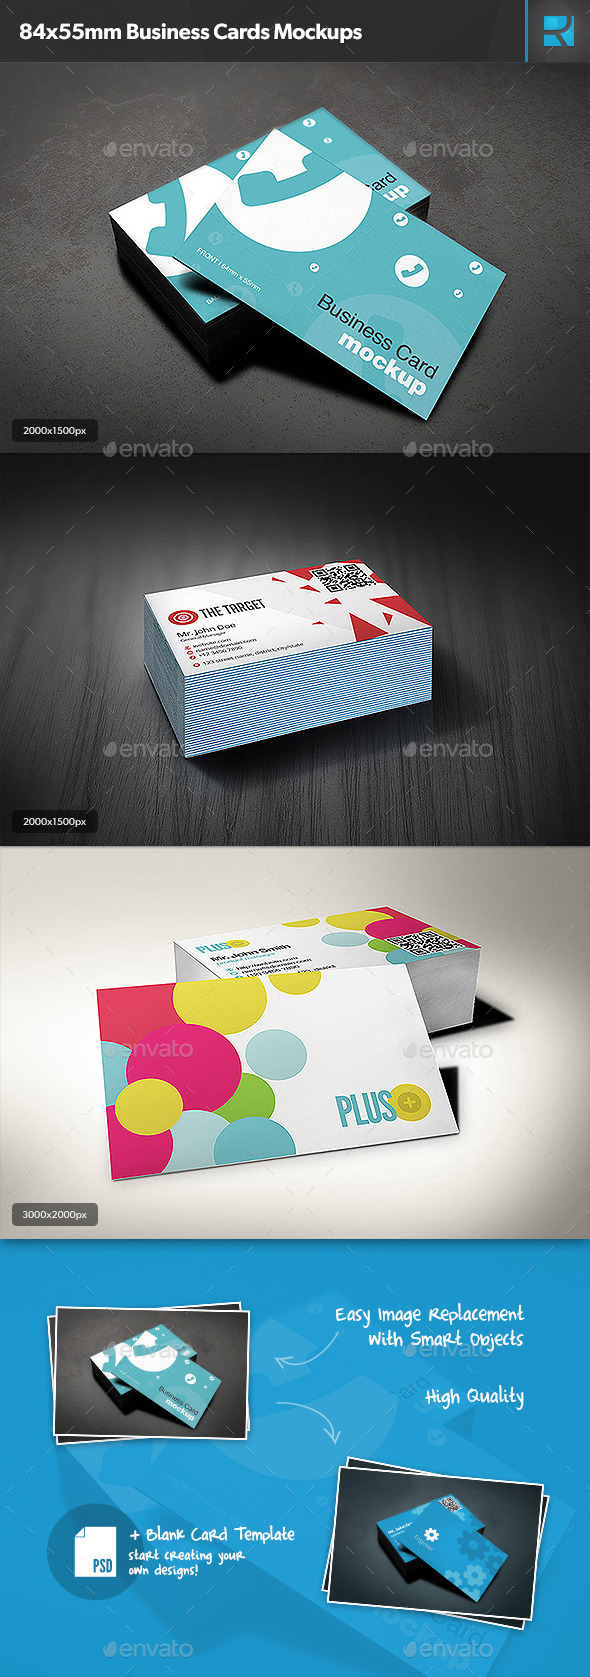 GraphicRiver 84x55mm Business Cards Mockups 9818022